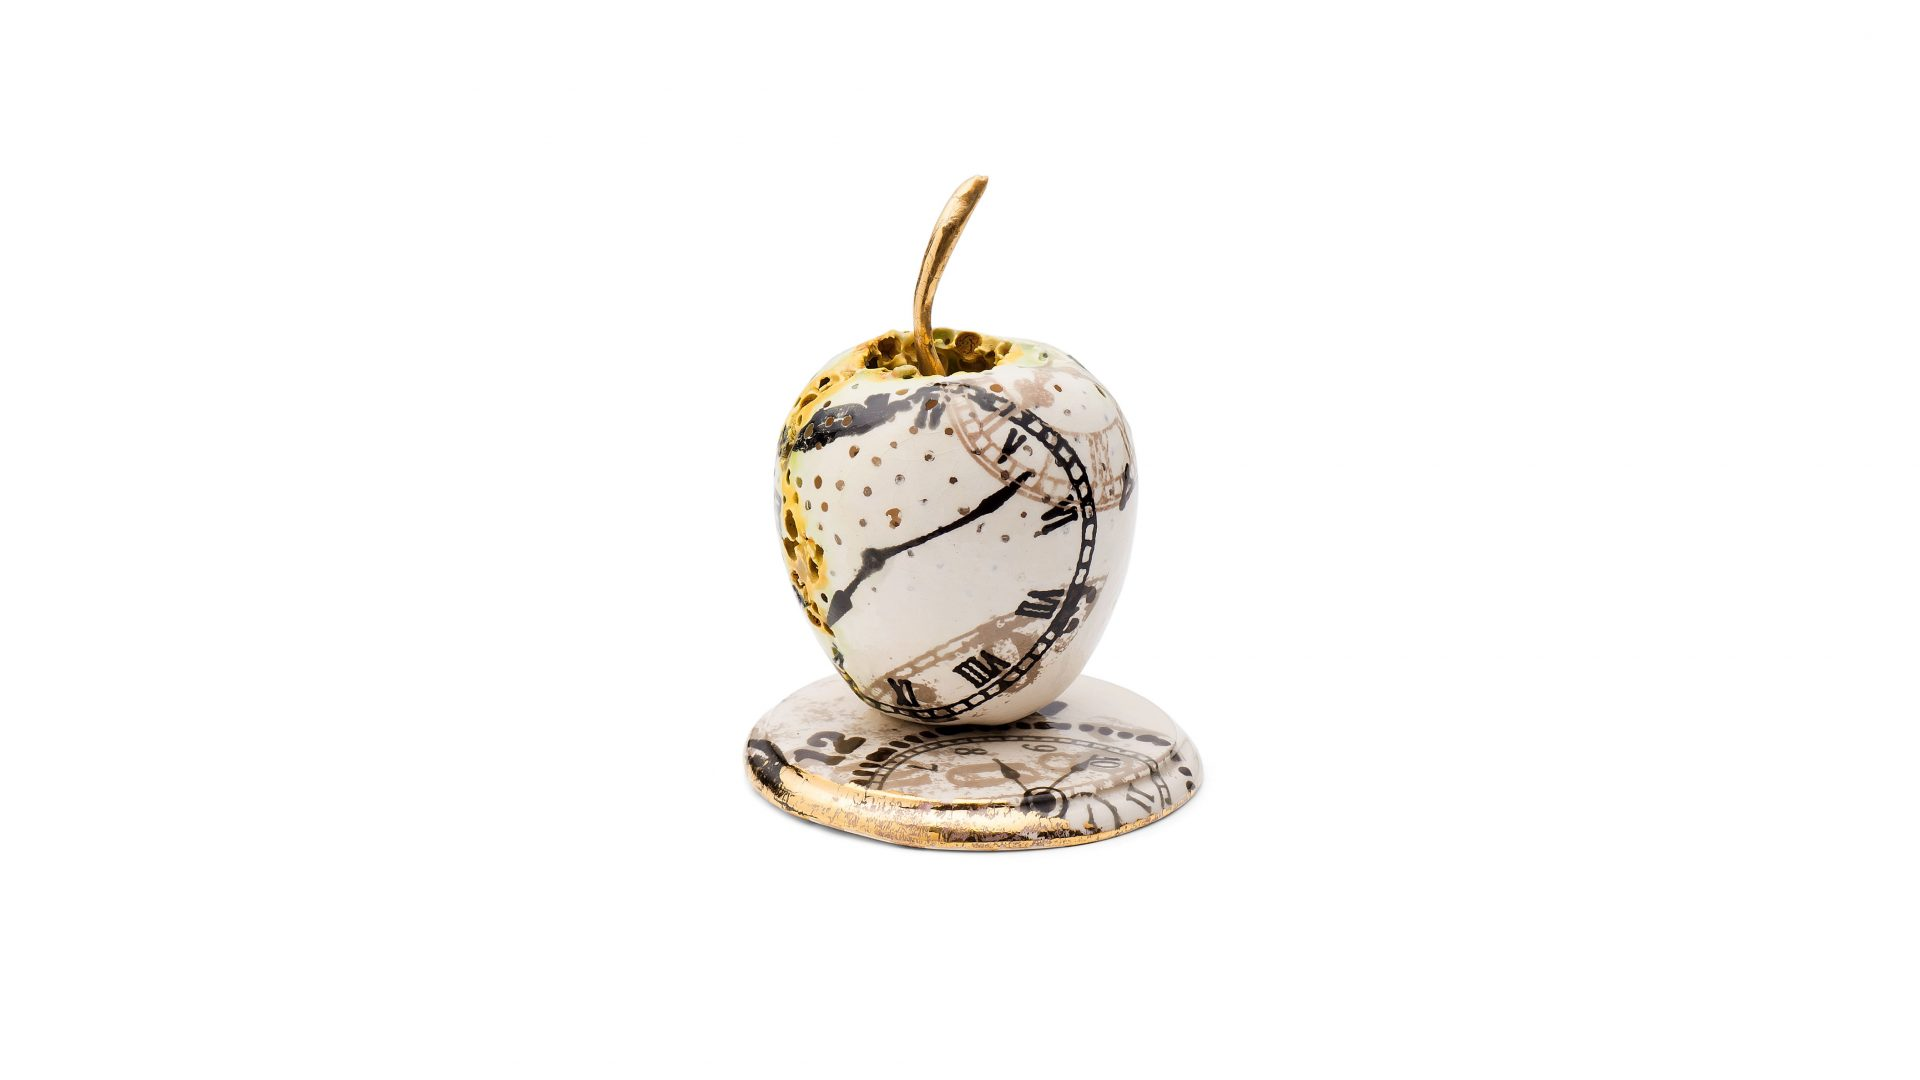 Ceramic white and gold apple by Remon Jephcott